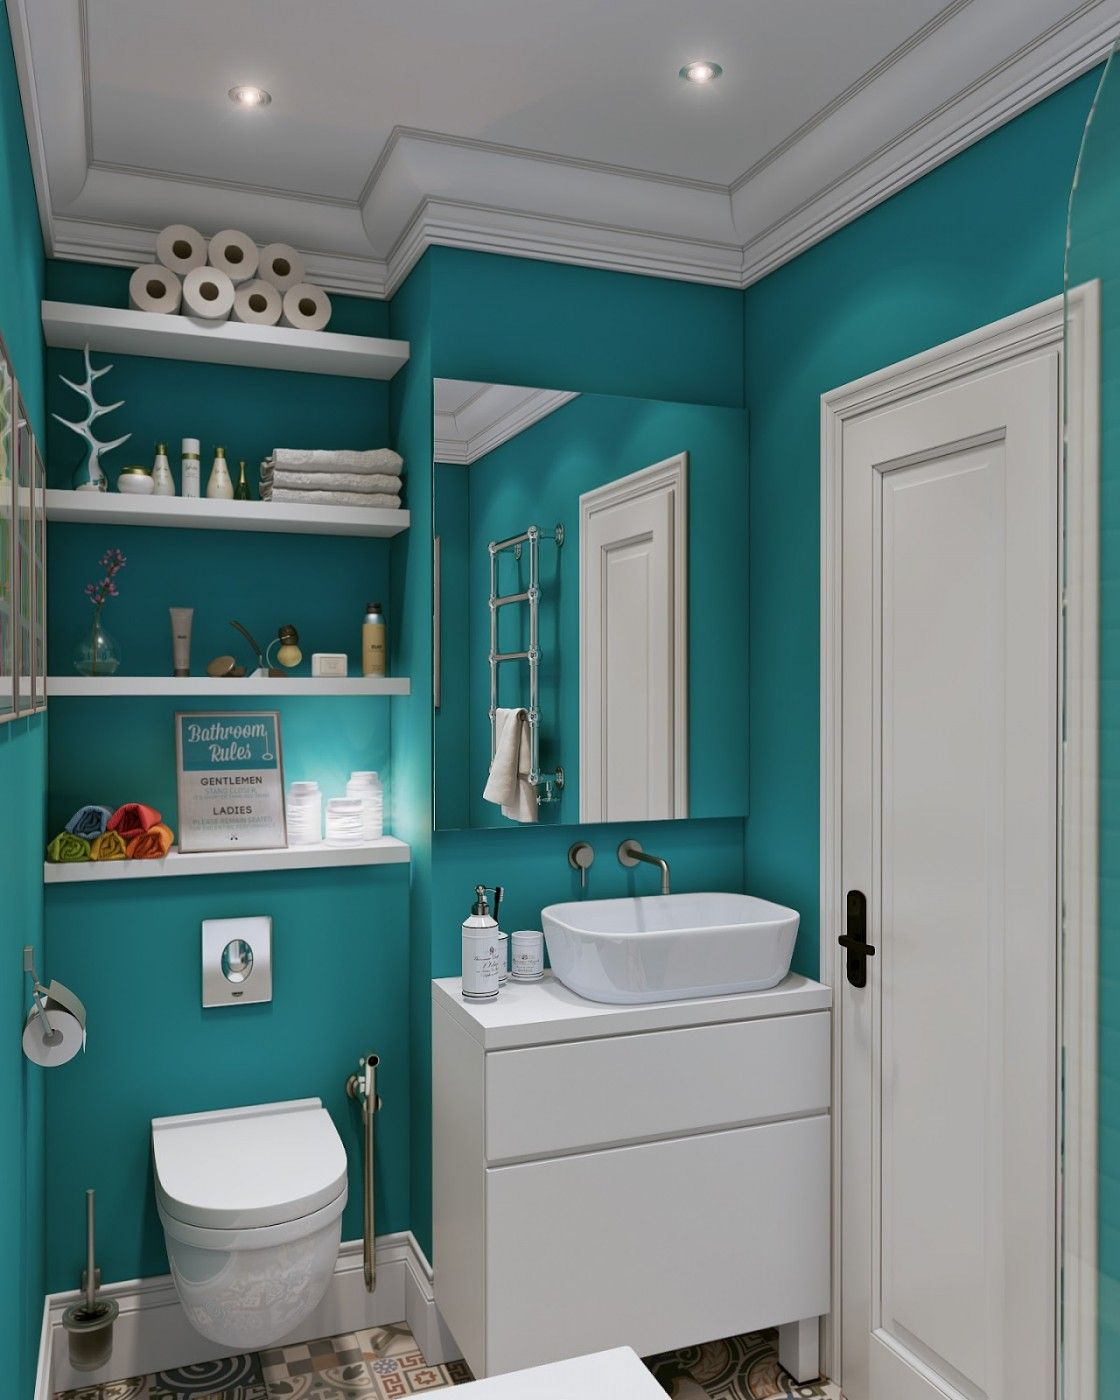 Good Contemporary Teal Bathroom Wall Color Scheme With Wooden Shelves Above  Toilet Asu2026